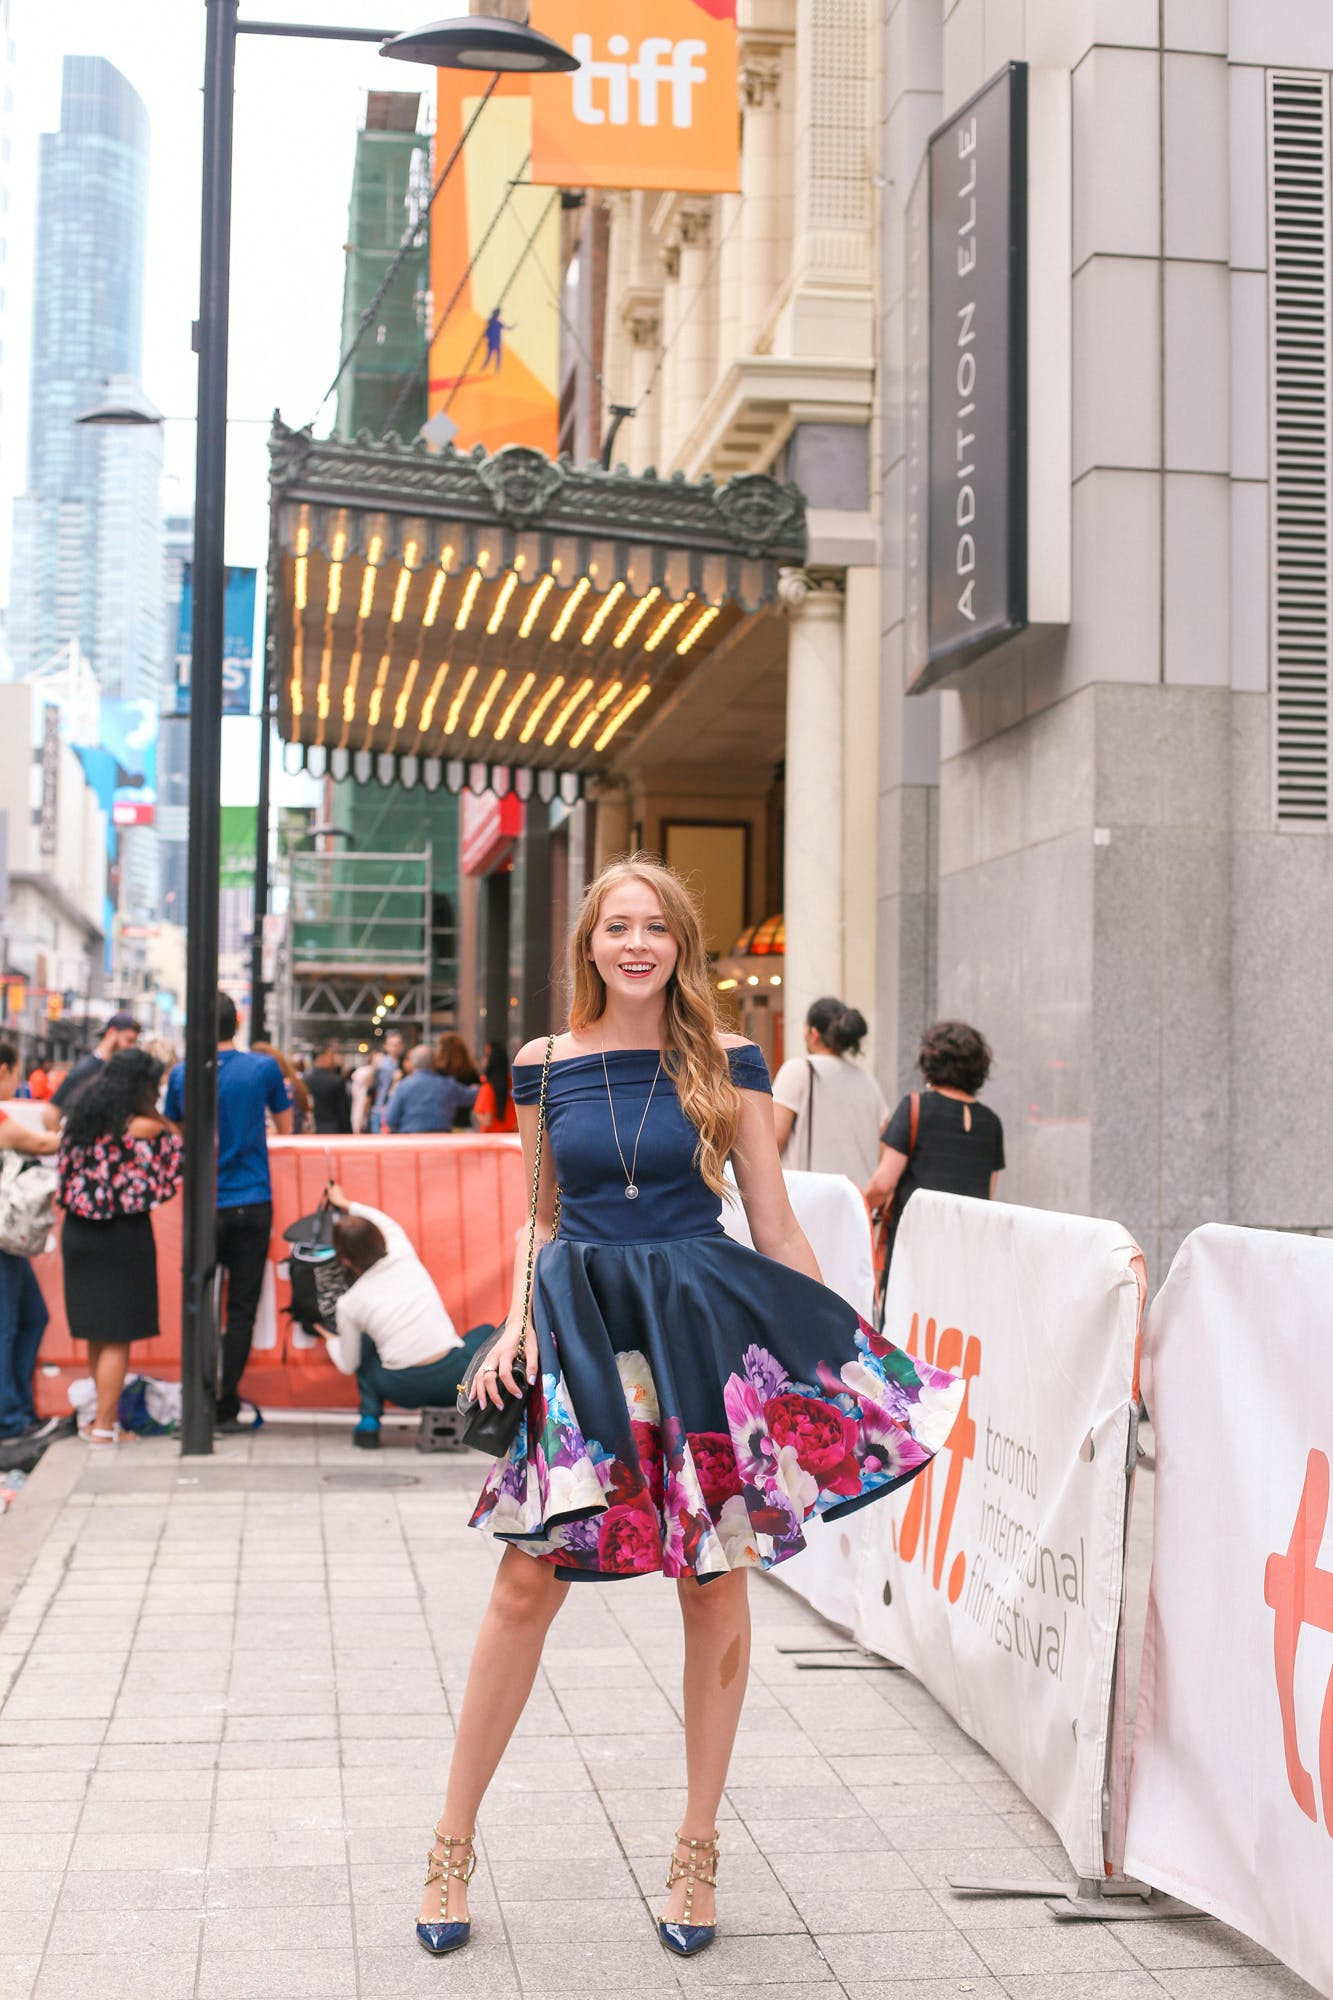 What I wore to a TIFF Premiere: Ted Baker Blushing Bouquet Bardot navy floral dress, BCBG studded shoes, Chanel Diana Bag